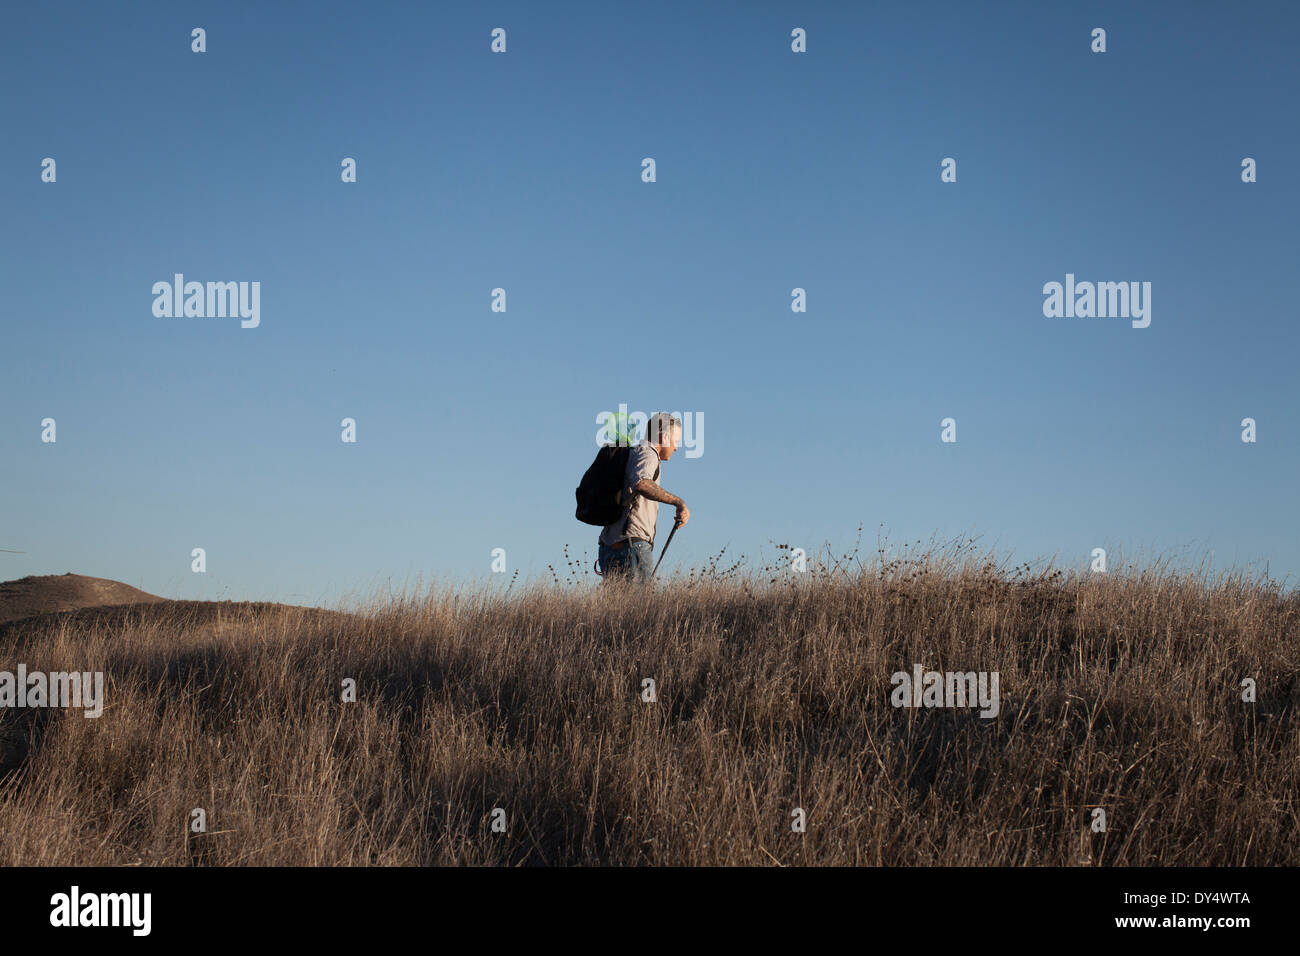 Distant view of mature man hiking in hills and long grass - Stock Image